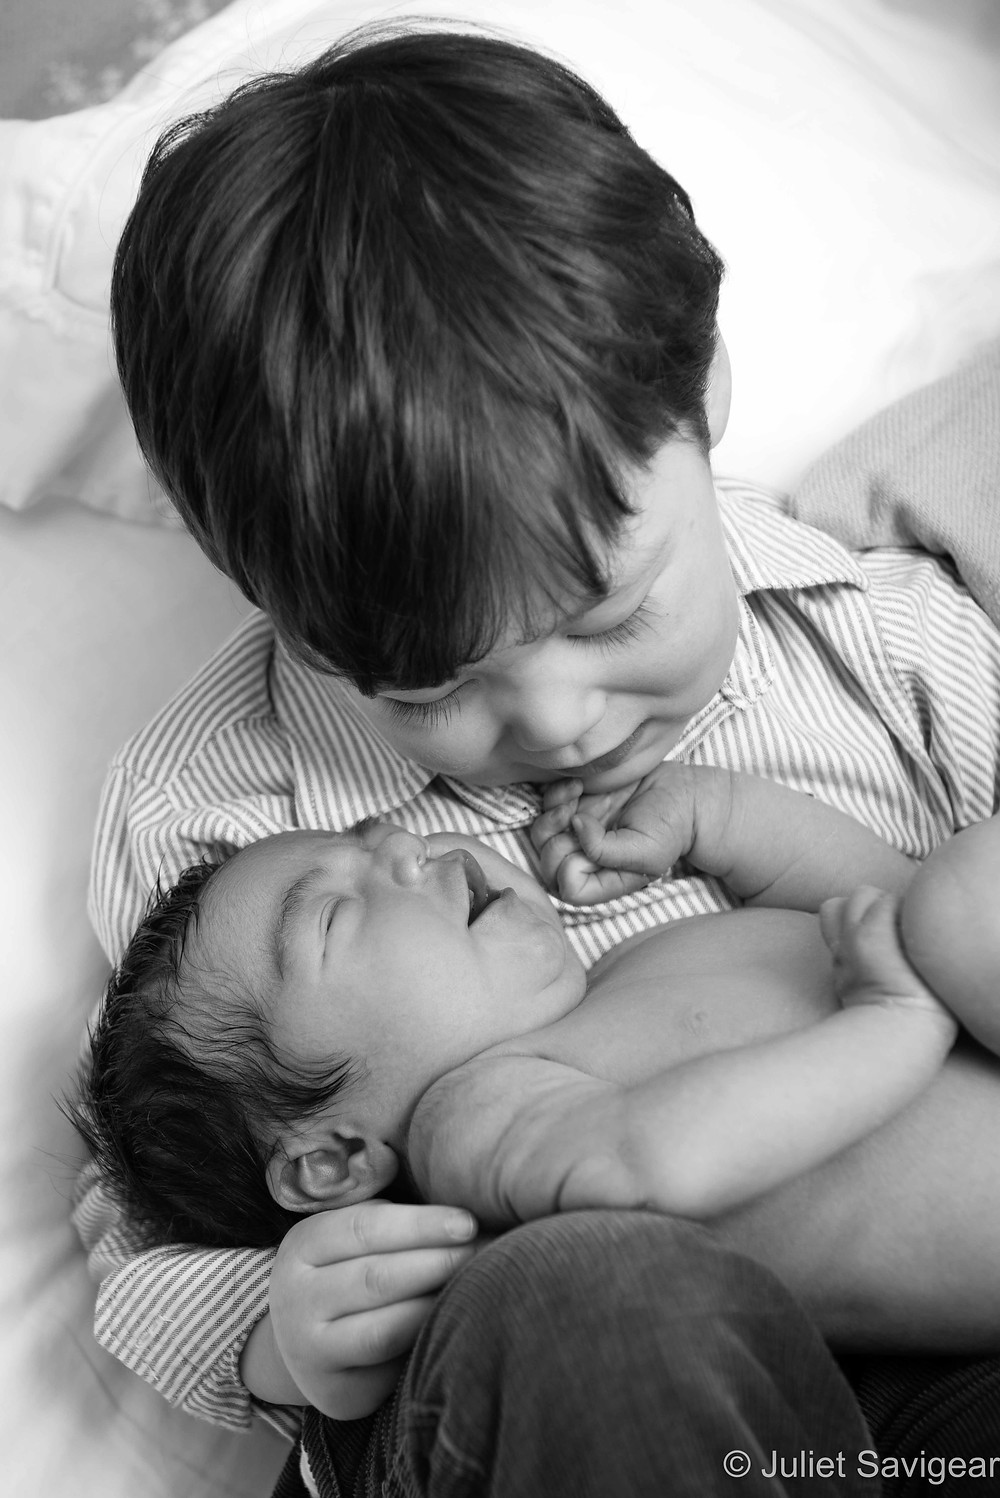 Caring - Newborn Baby & Toddler Photography, London